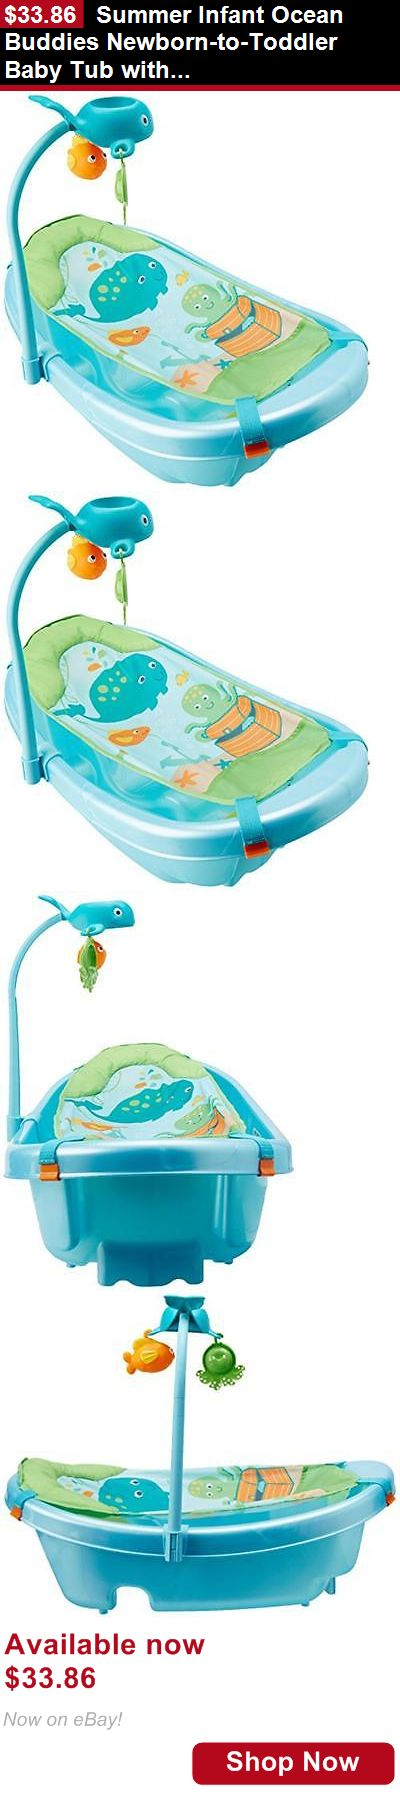 Baby Bath Tubs: Summer Infant Ocean Buddies Newborn-To-Toddler Baby Tub With Toy Bar, New, Free BUY IT NOW ONLY: $33.86